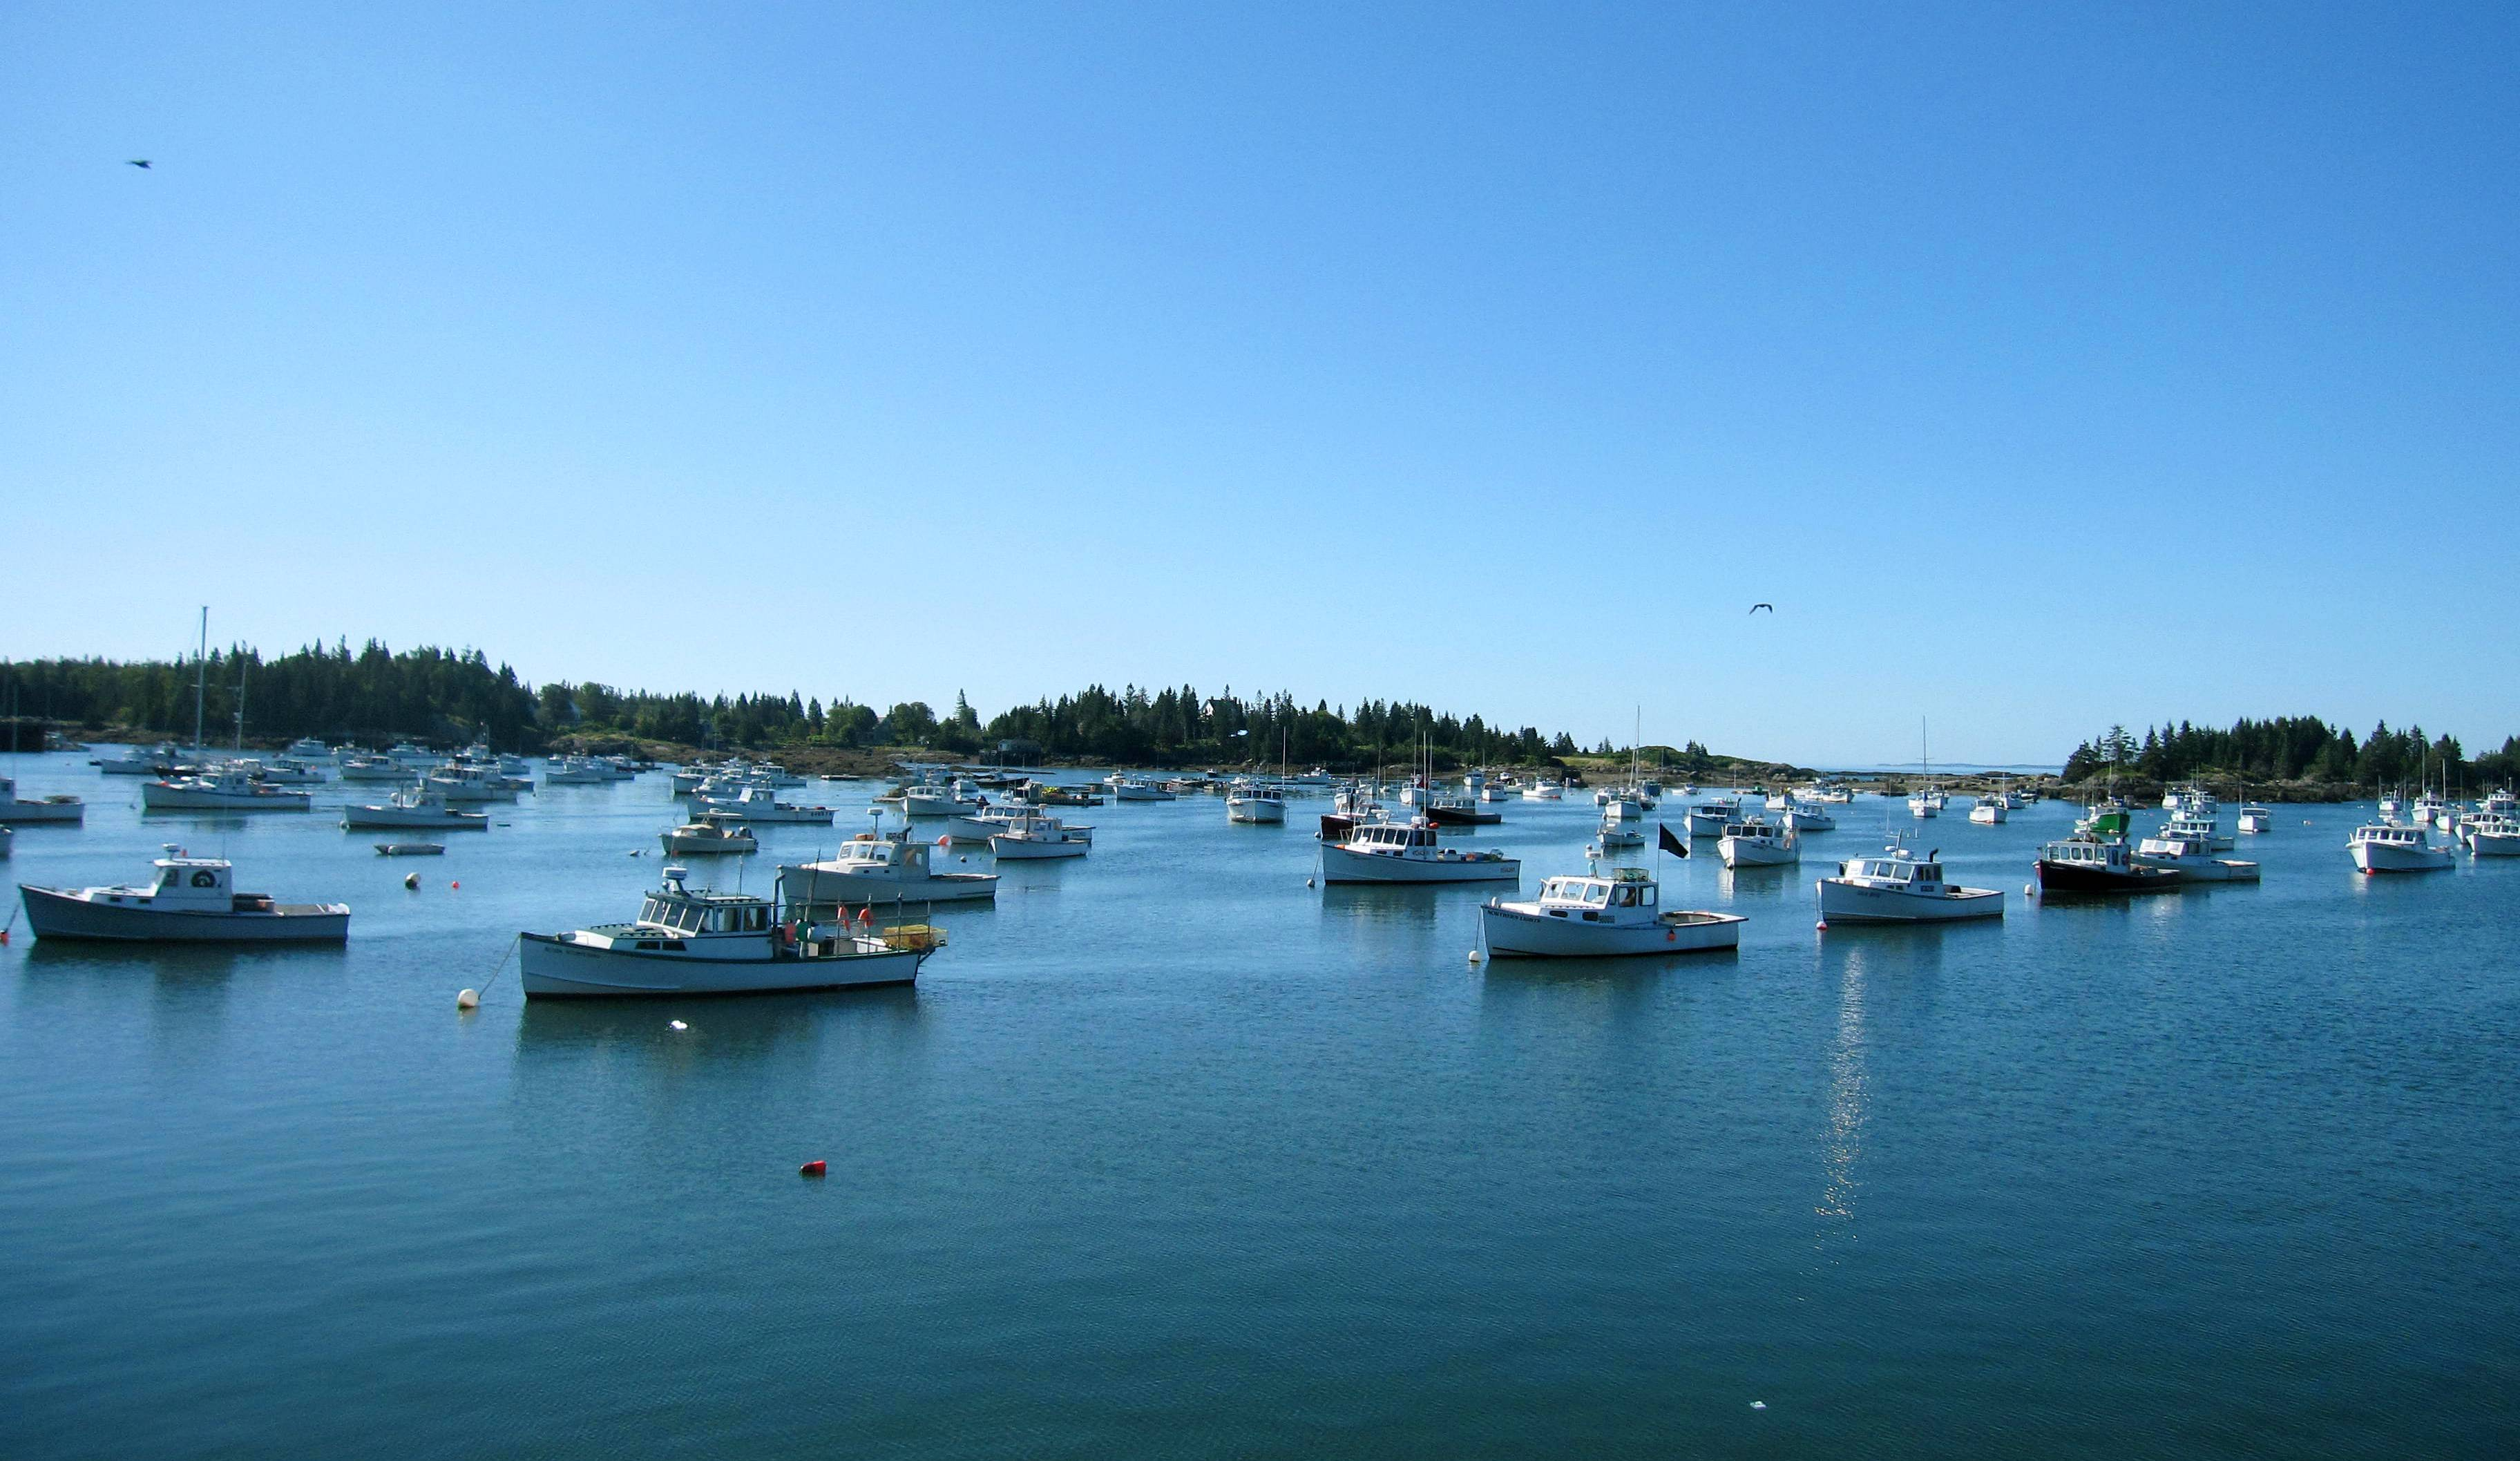 A 75-minute ferry connects Vinalhaven Island, Maine, to the coastal town of Rockland on the other side of Penosbscot Bay. Vinalhaven offers summertime visitors quiet waterfront scenery, great places to bike and good food.